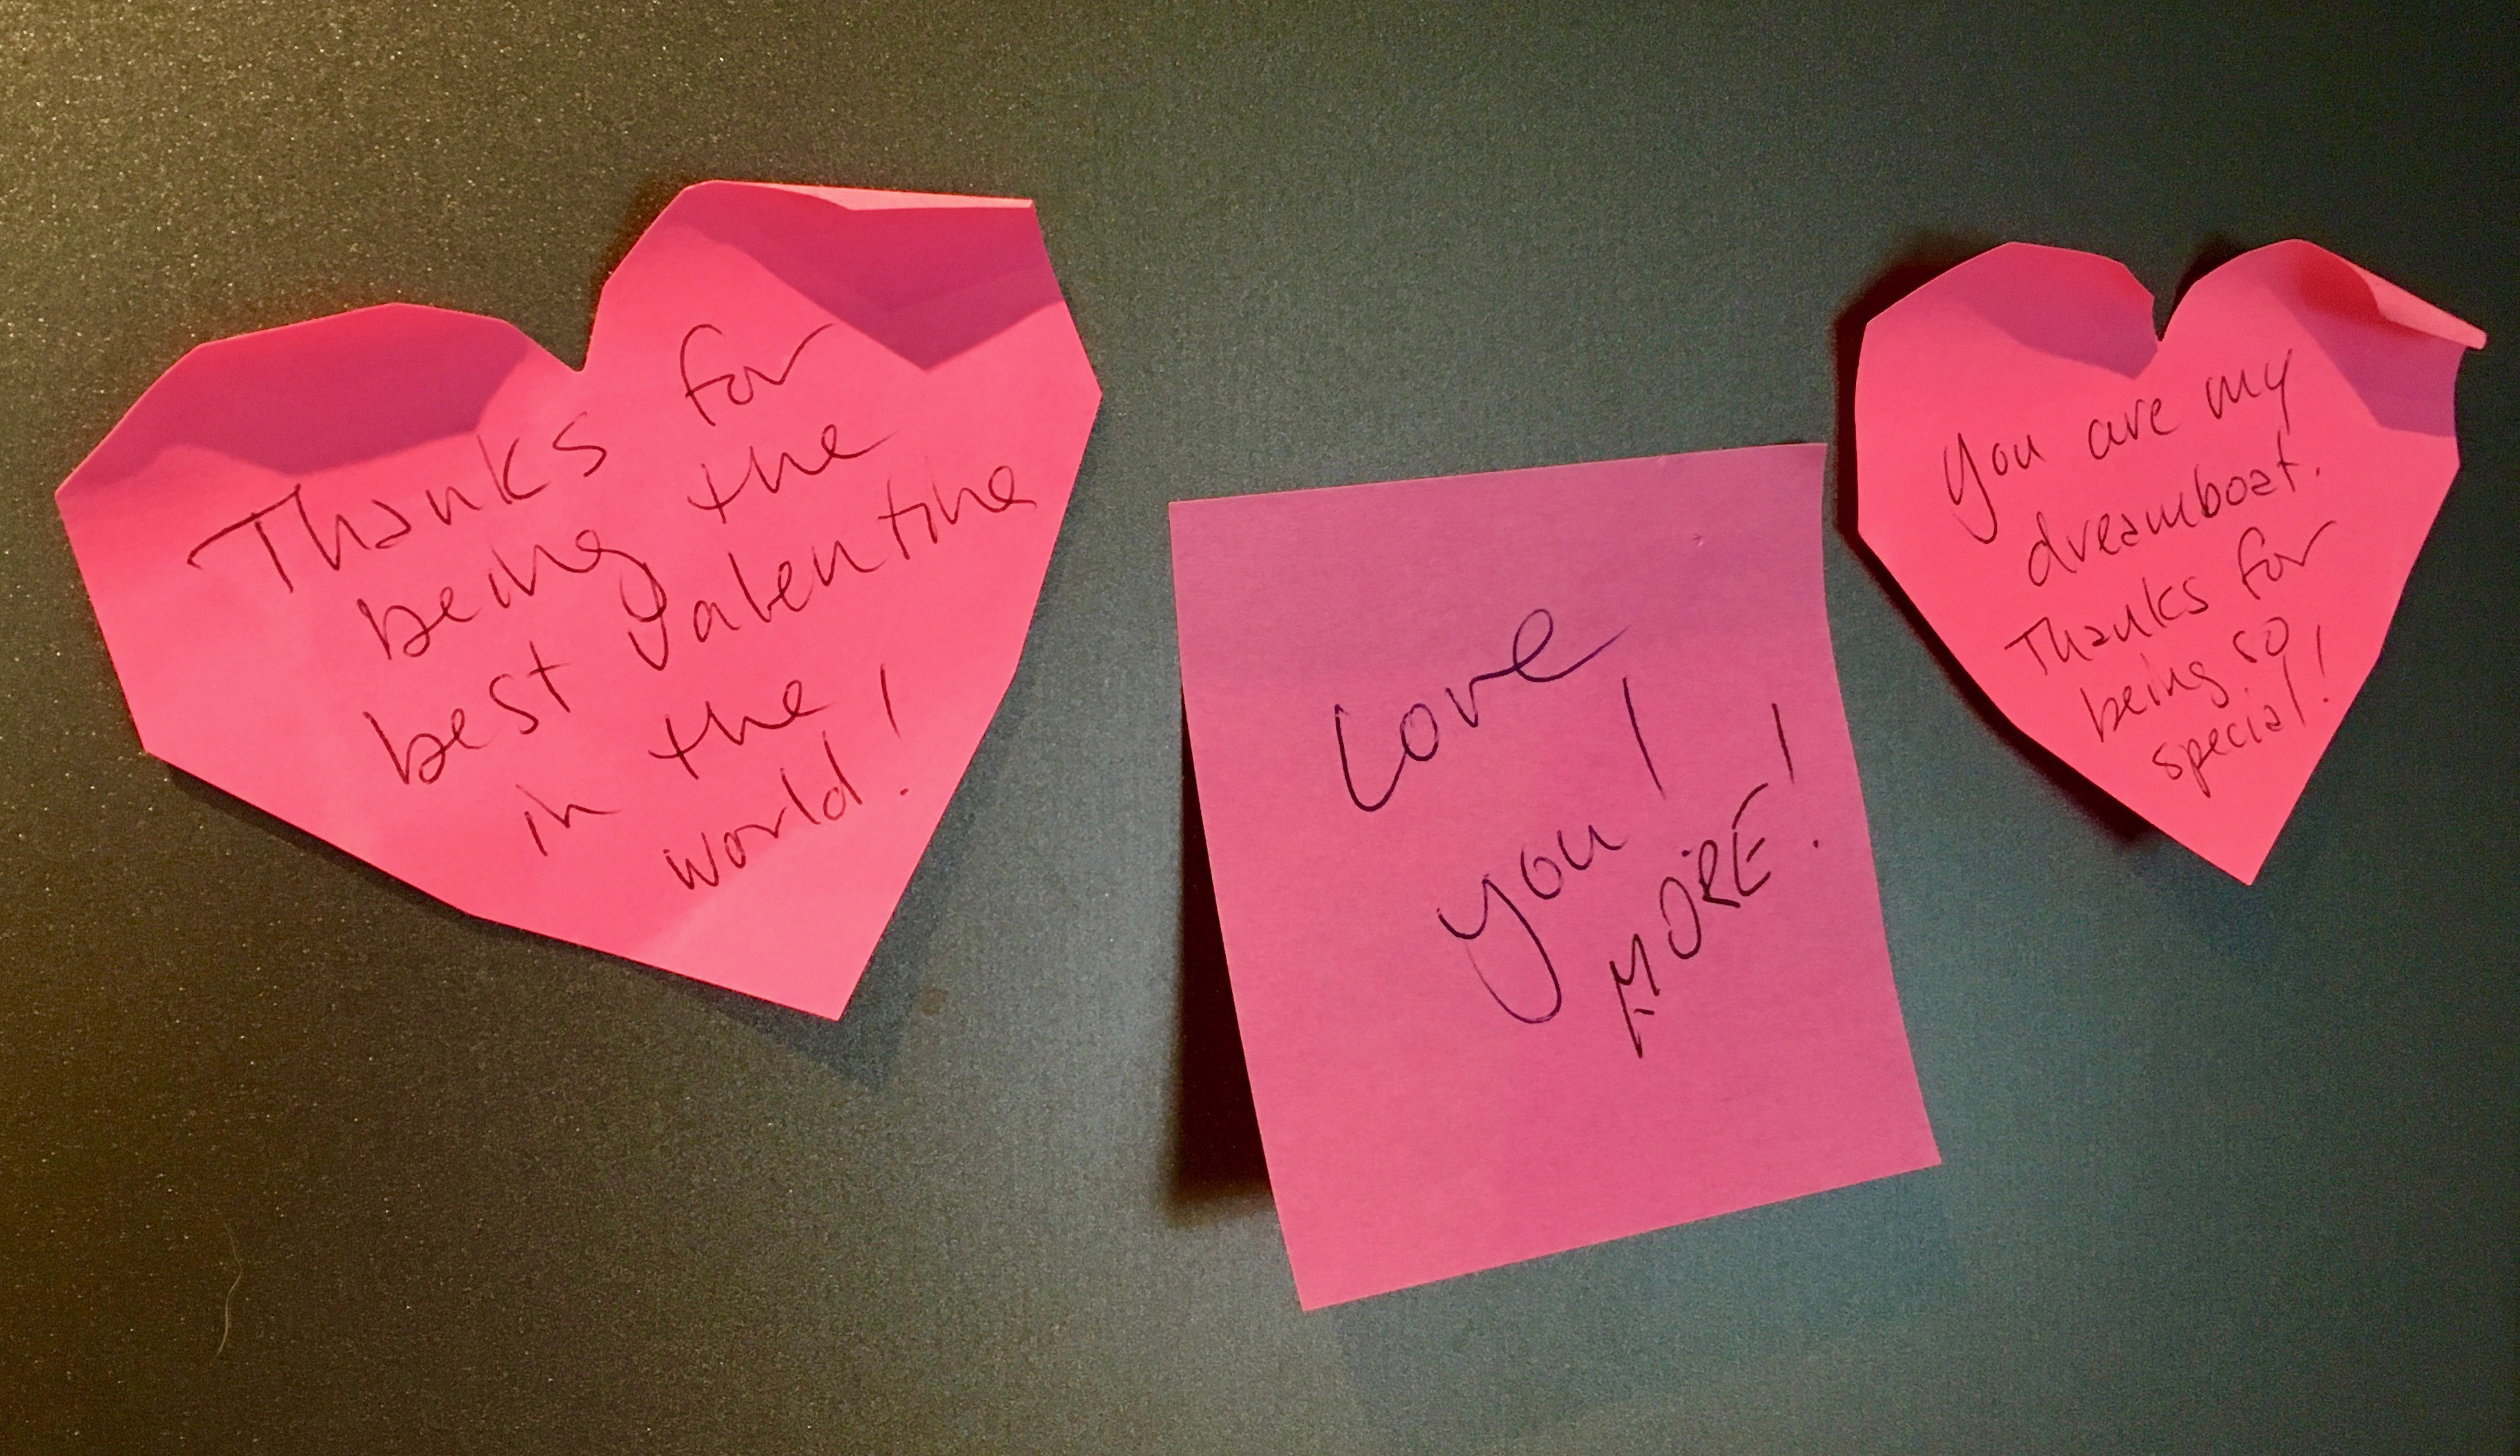 Sticky Romance Use The Power Of Post Its For A Better By Joni Sensel P S I Love You